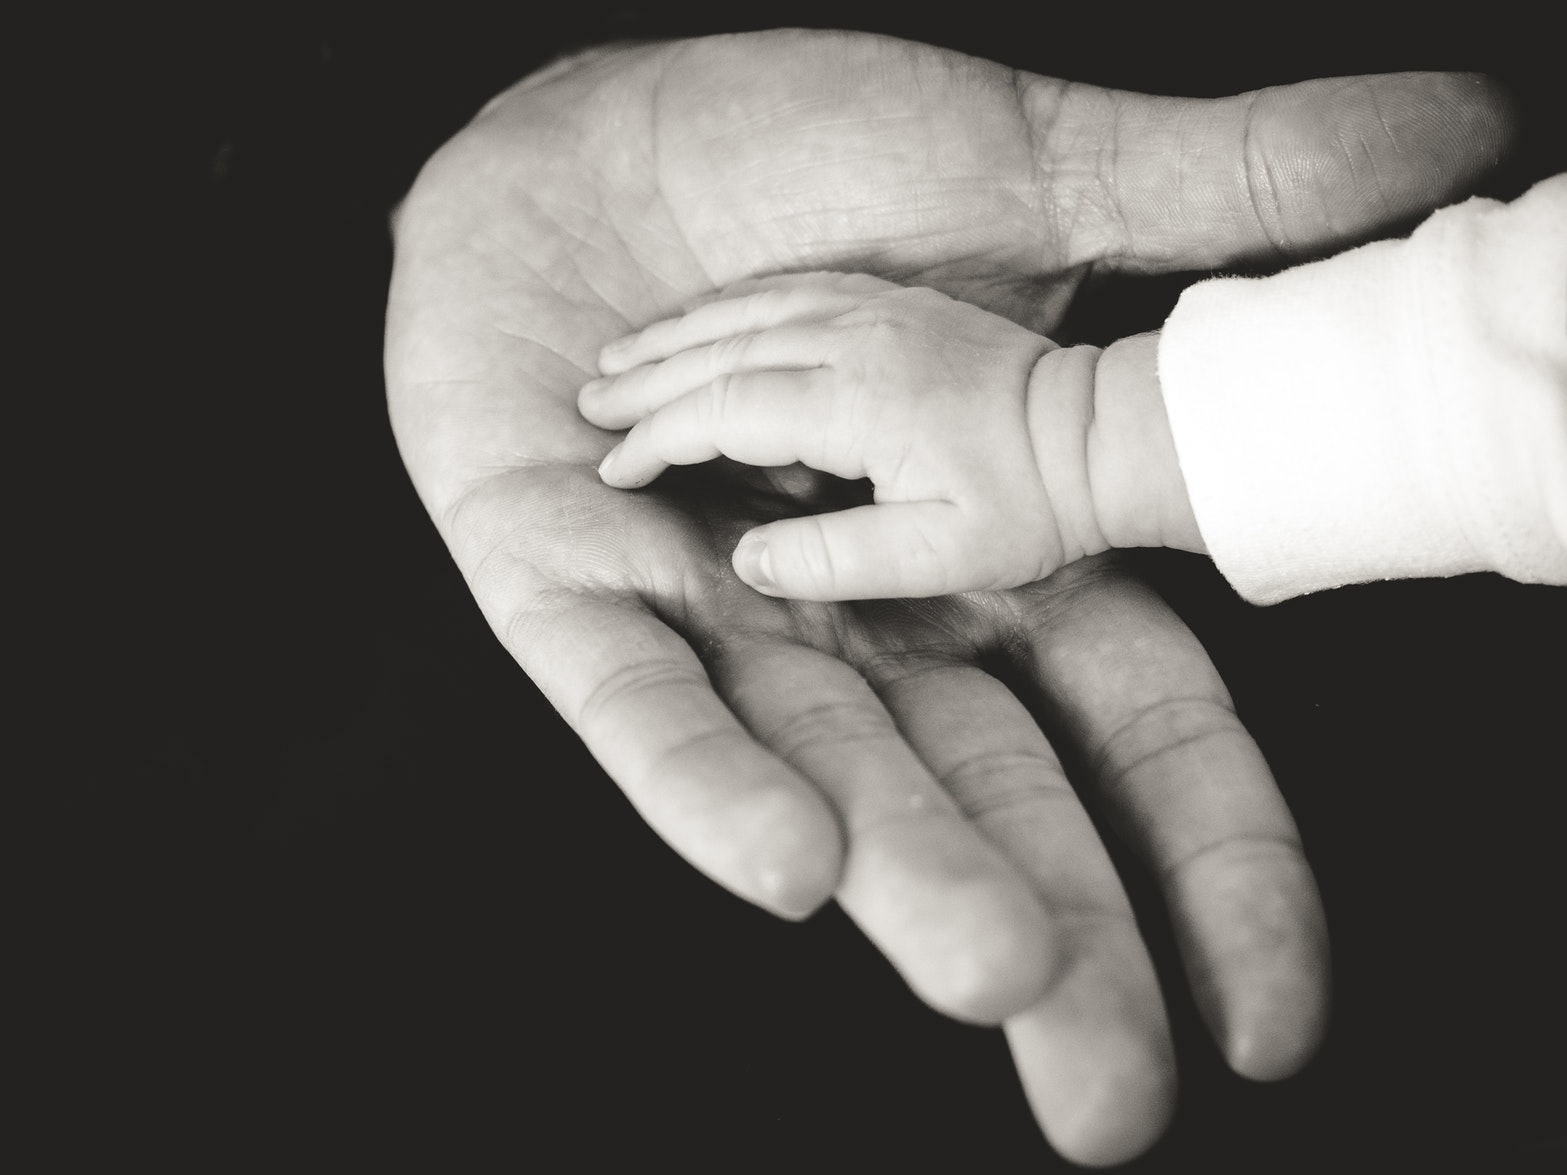 Father and baby touching hands